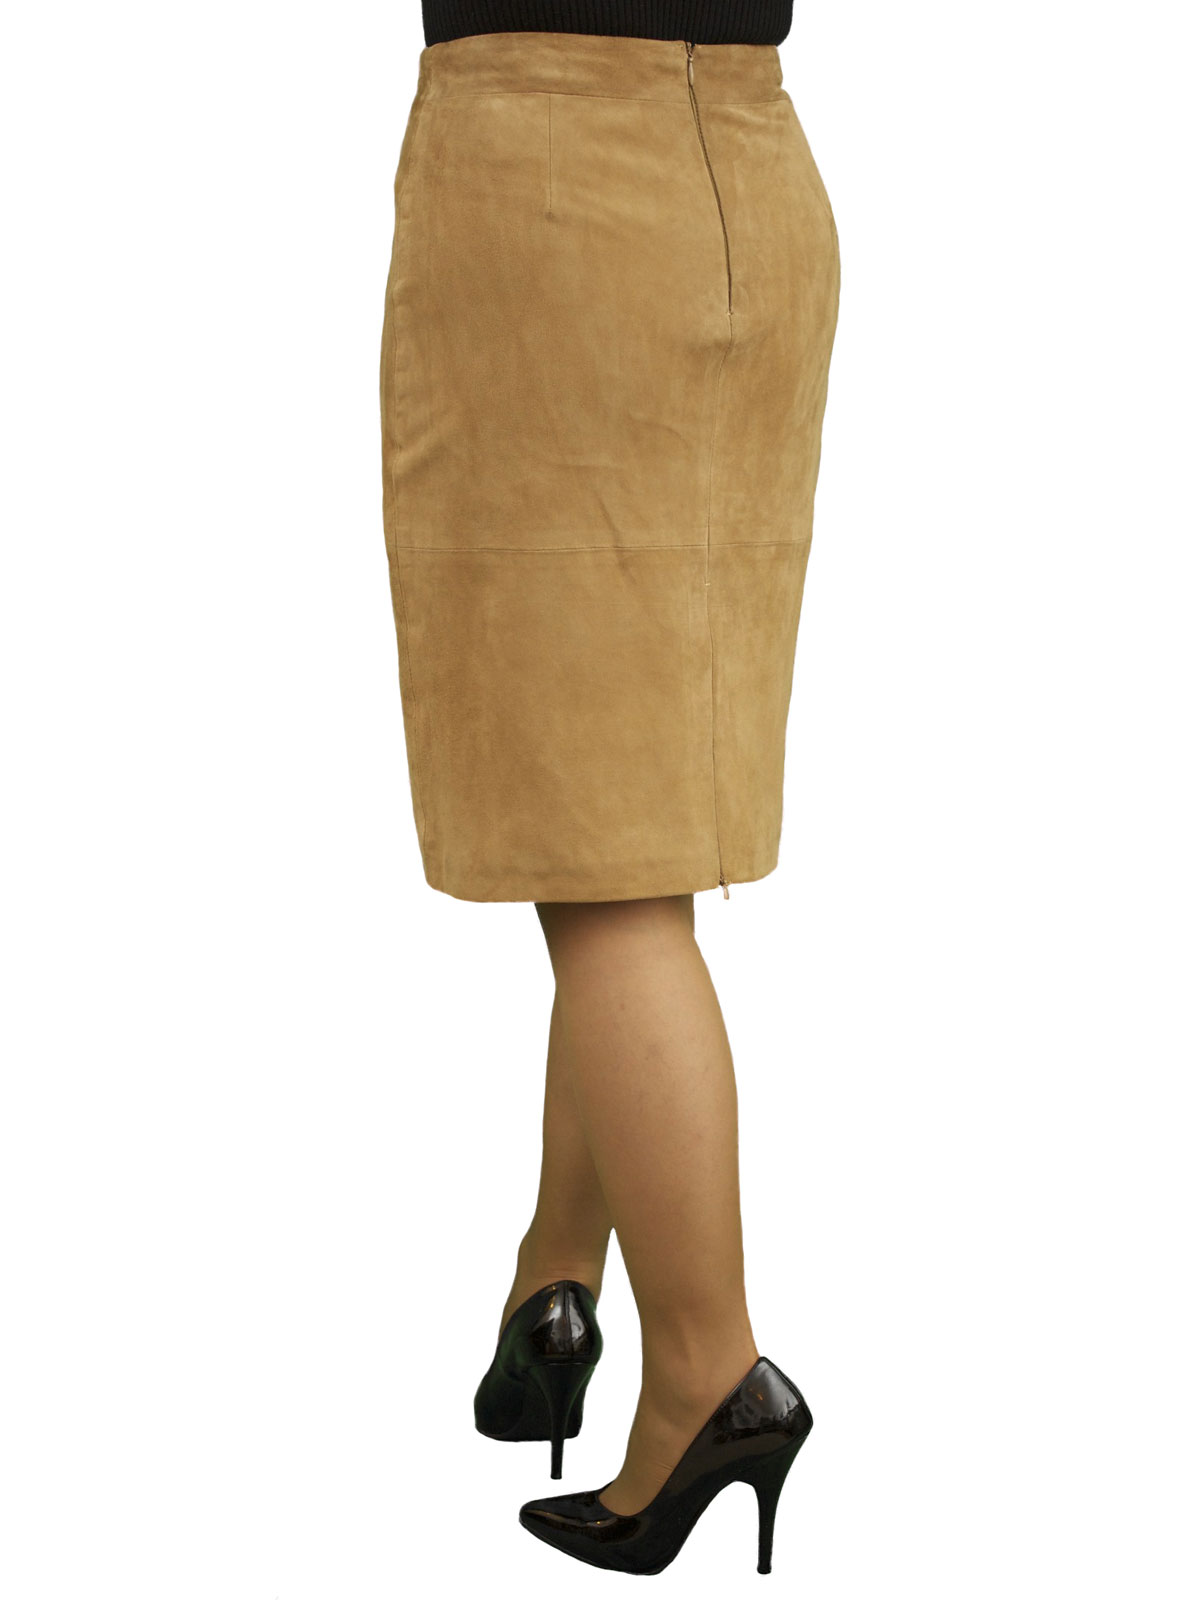 Tan Suede Knee Length Pencil Skirt rear zip vent